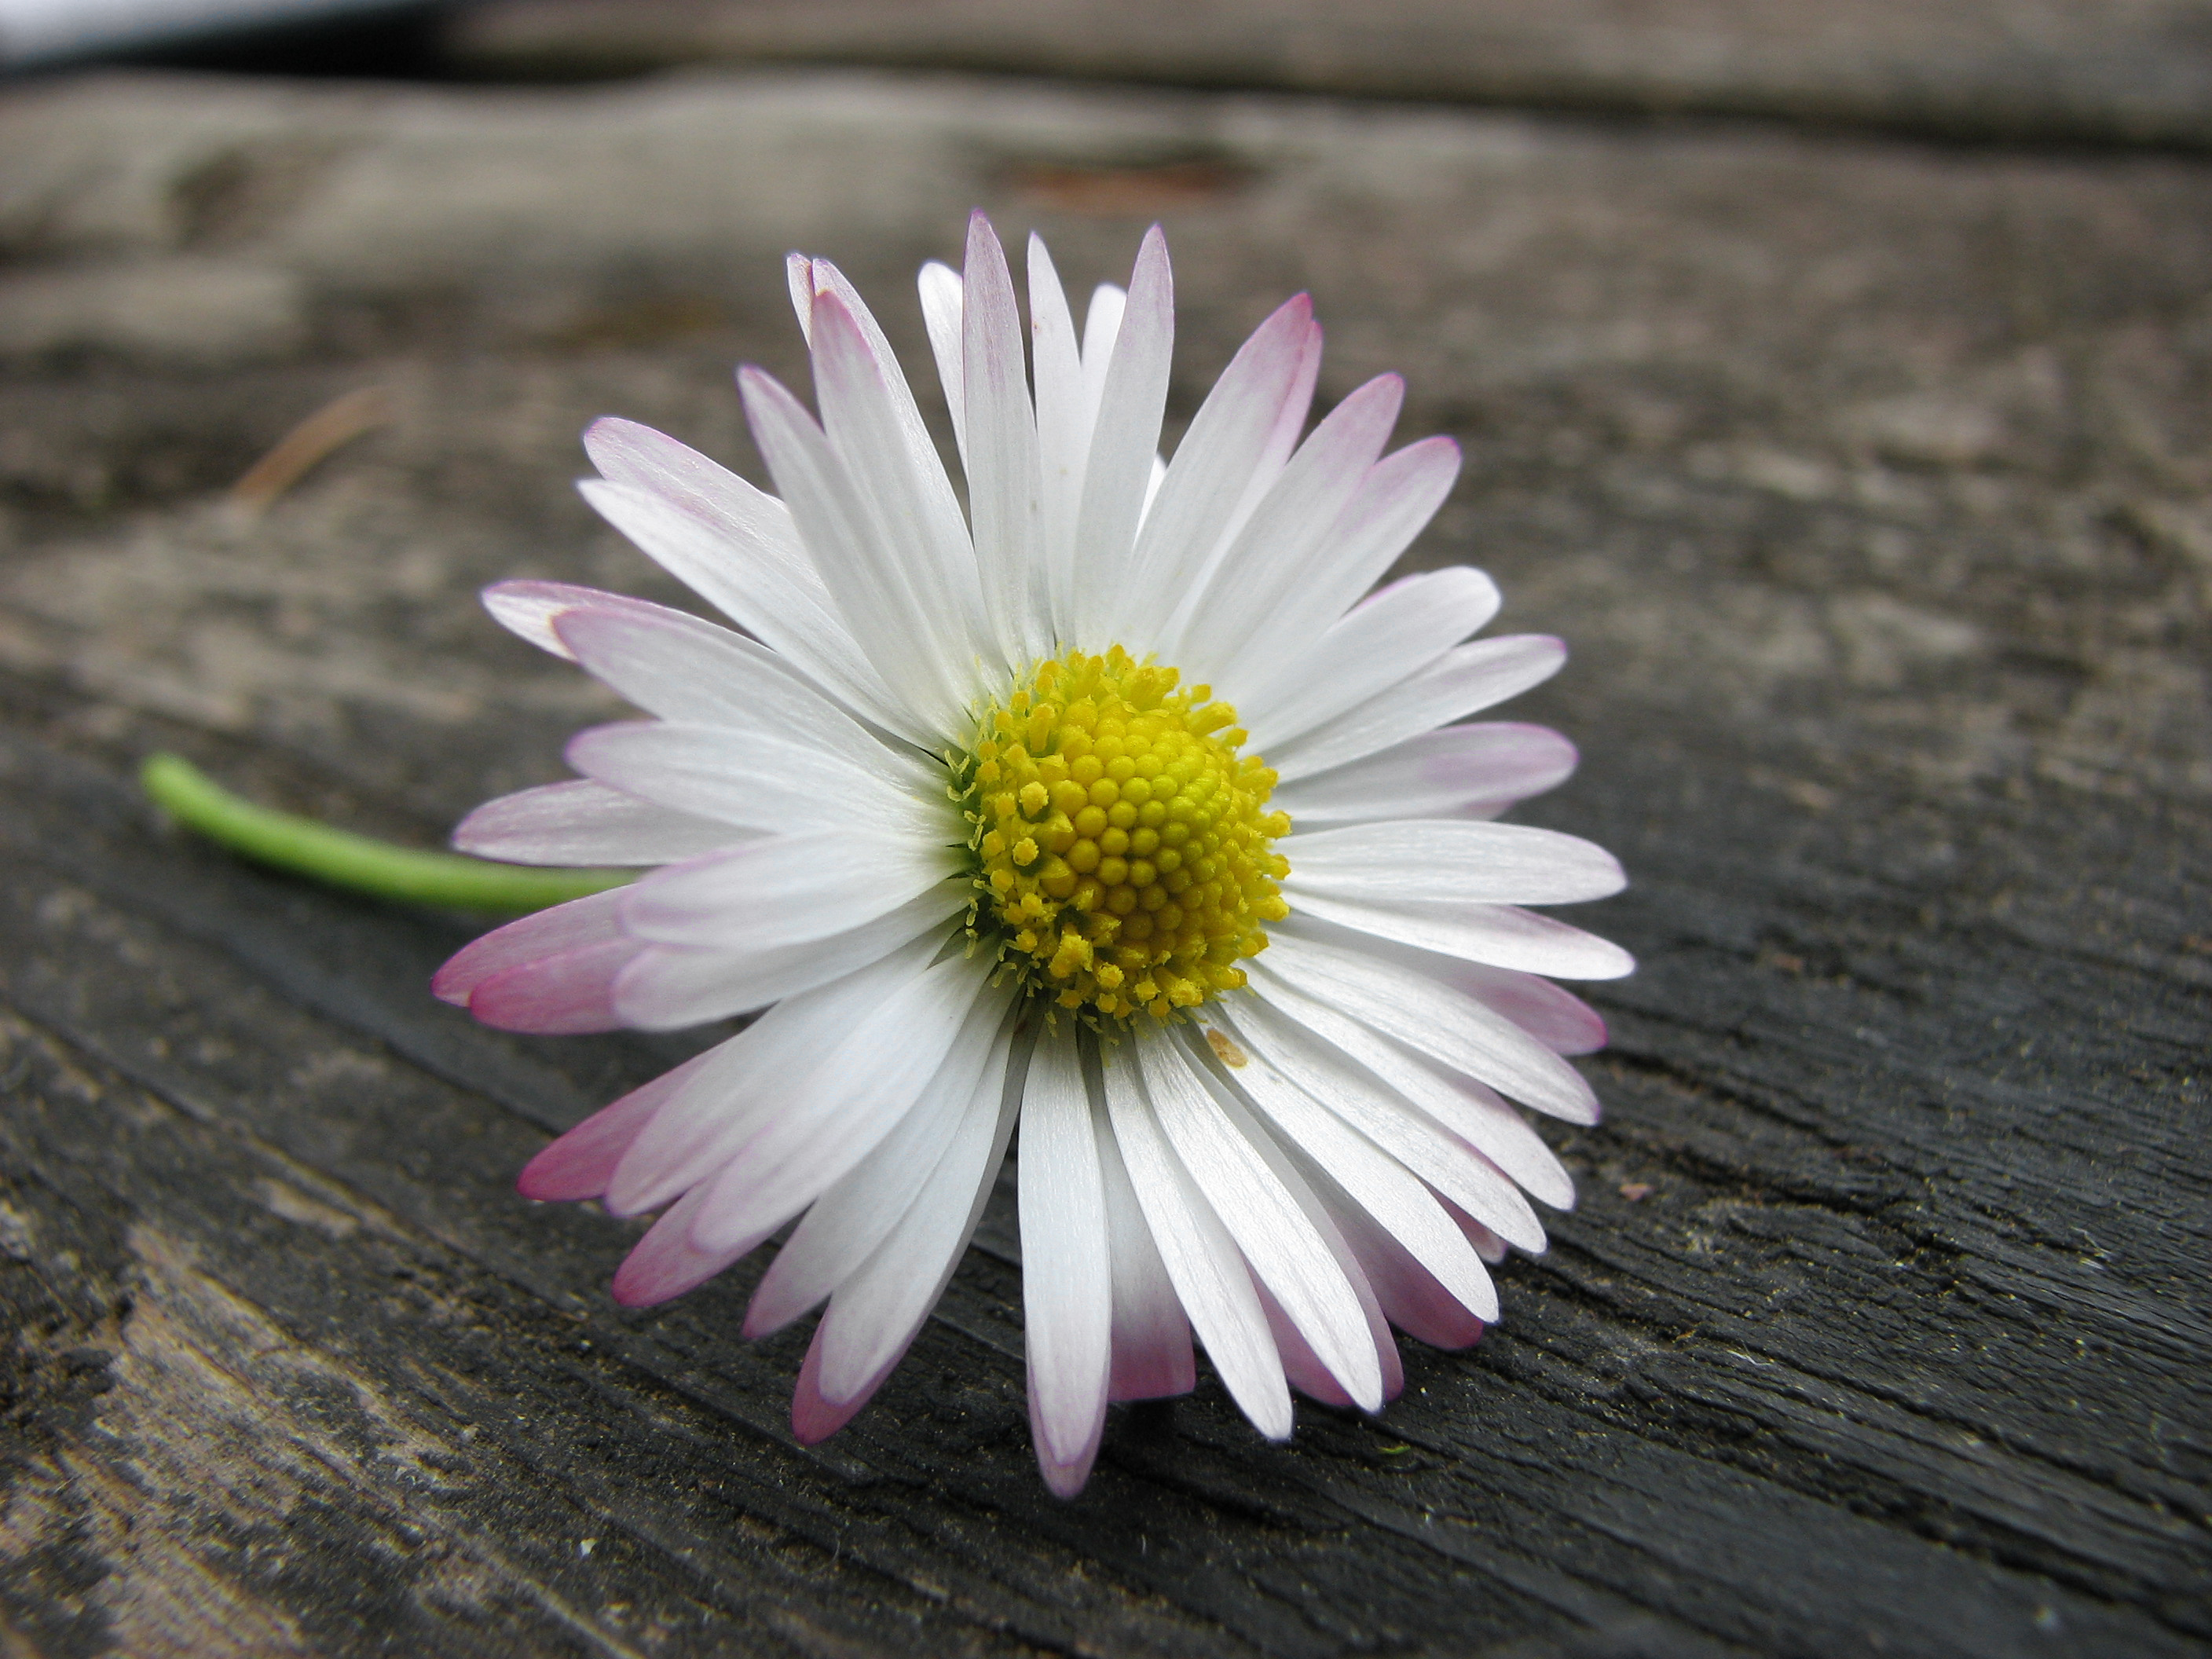 File:Pink twinged daisy on table edit.jpg